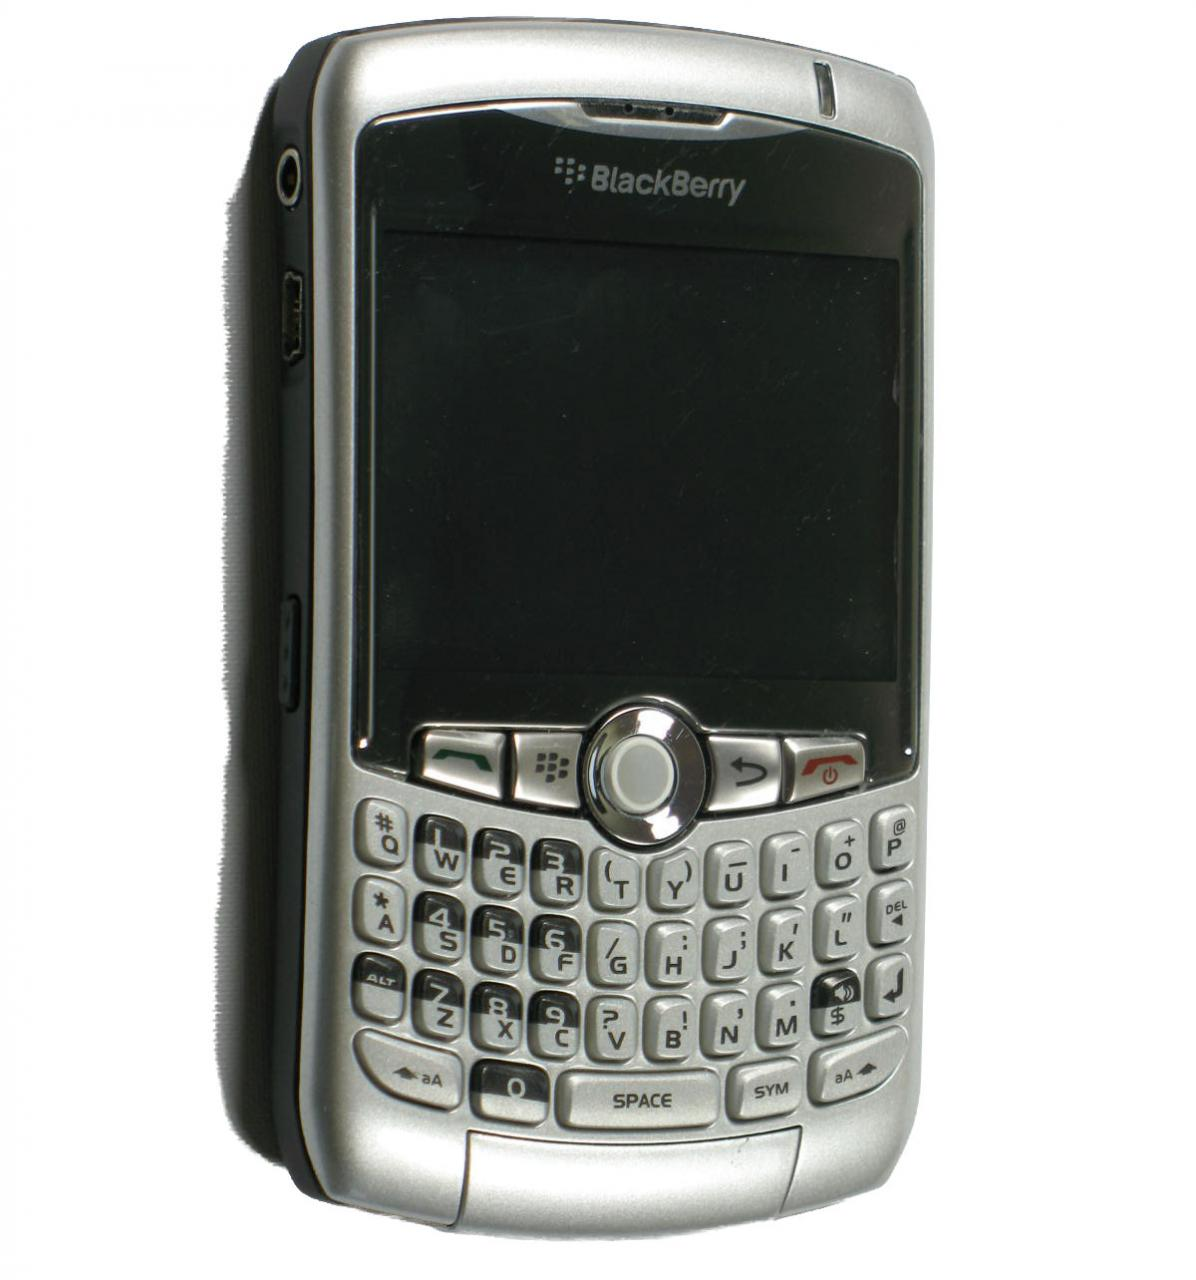 SILVER BLACKBERRY 8320 CURVE PDA CELL PHONE - Images ...